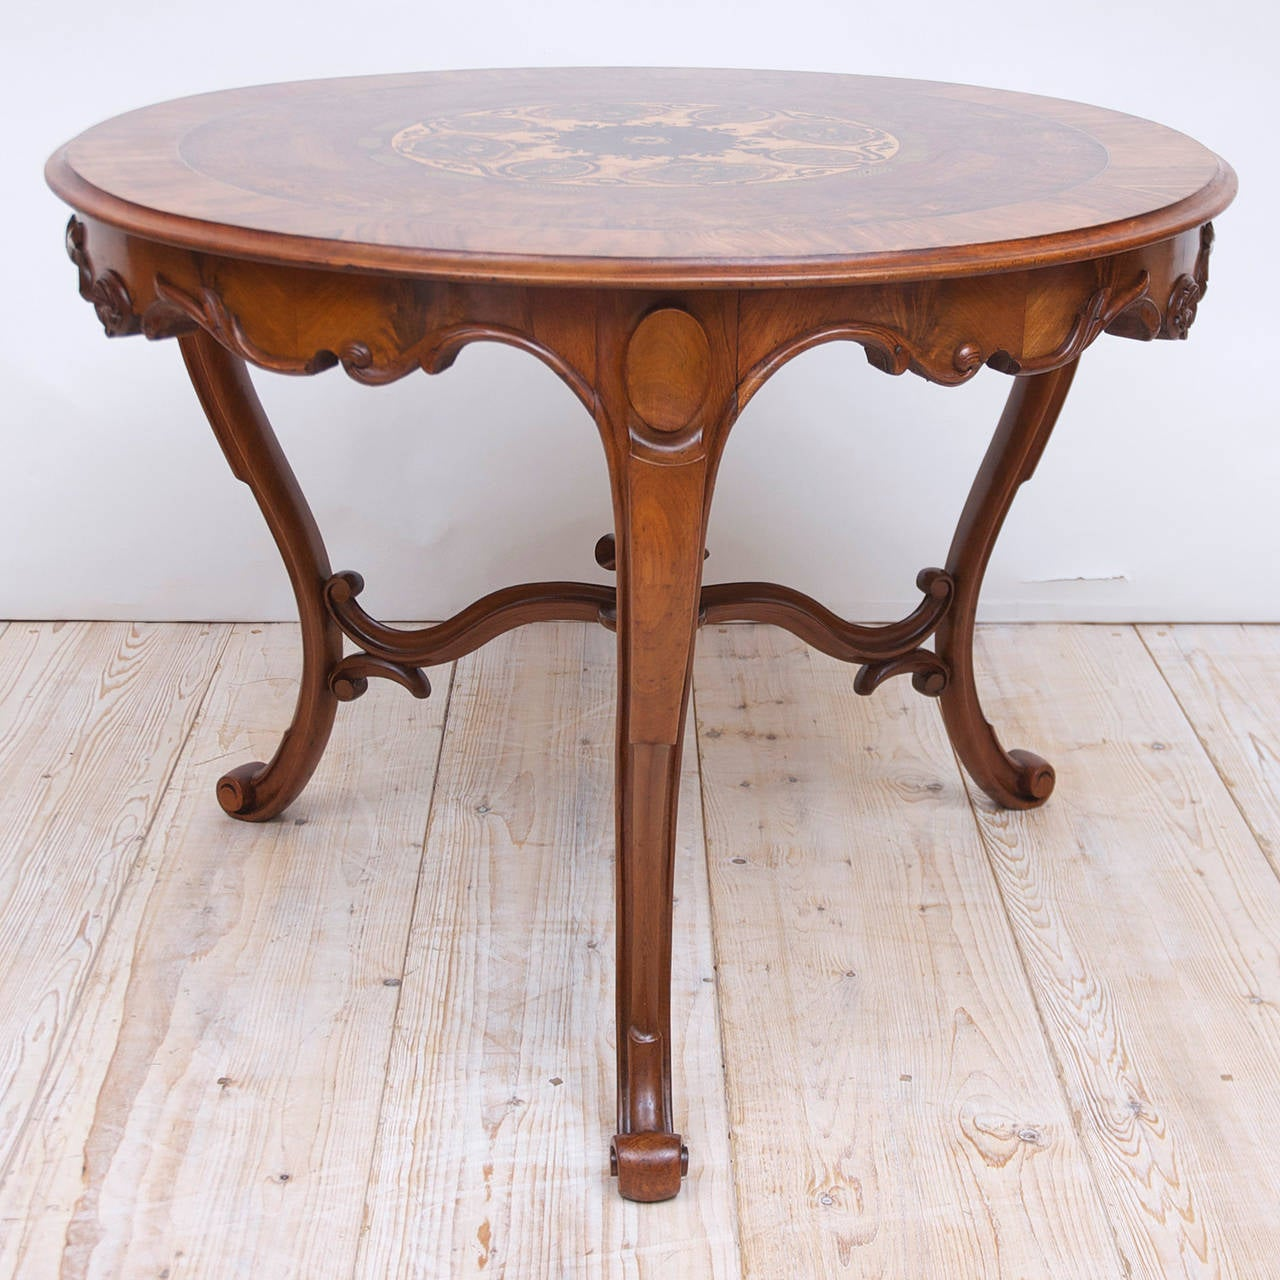 19th Century Italian Center Table with Mosaic Marquetry on Round Top 3